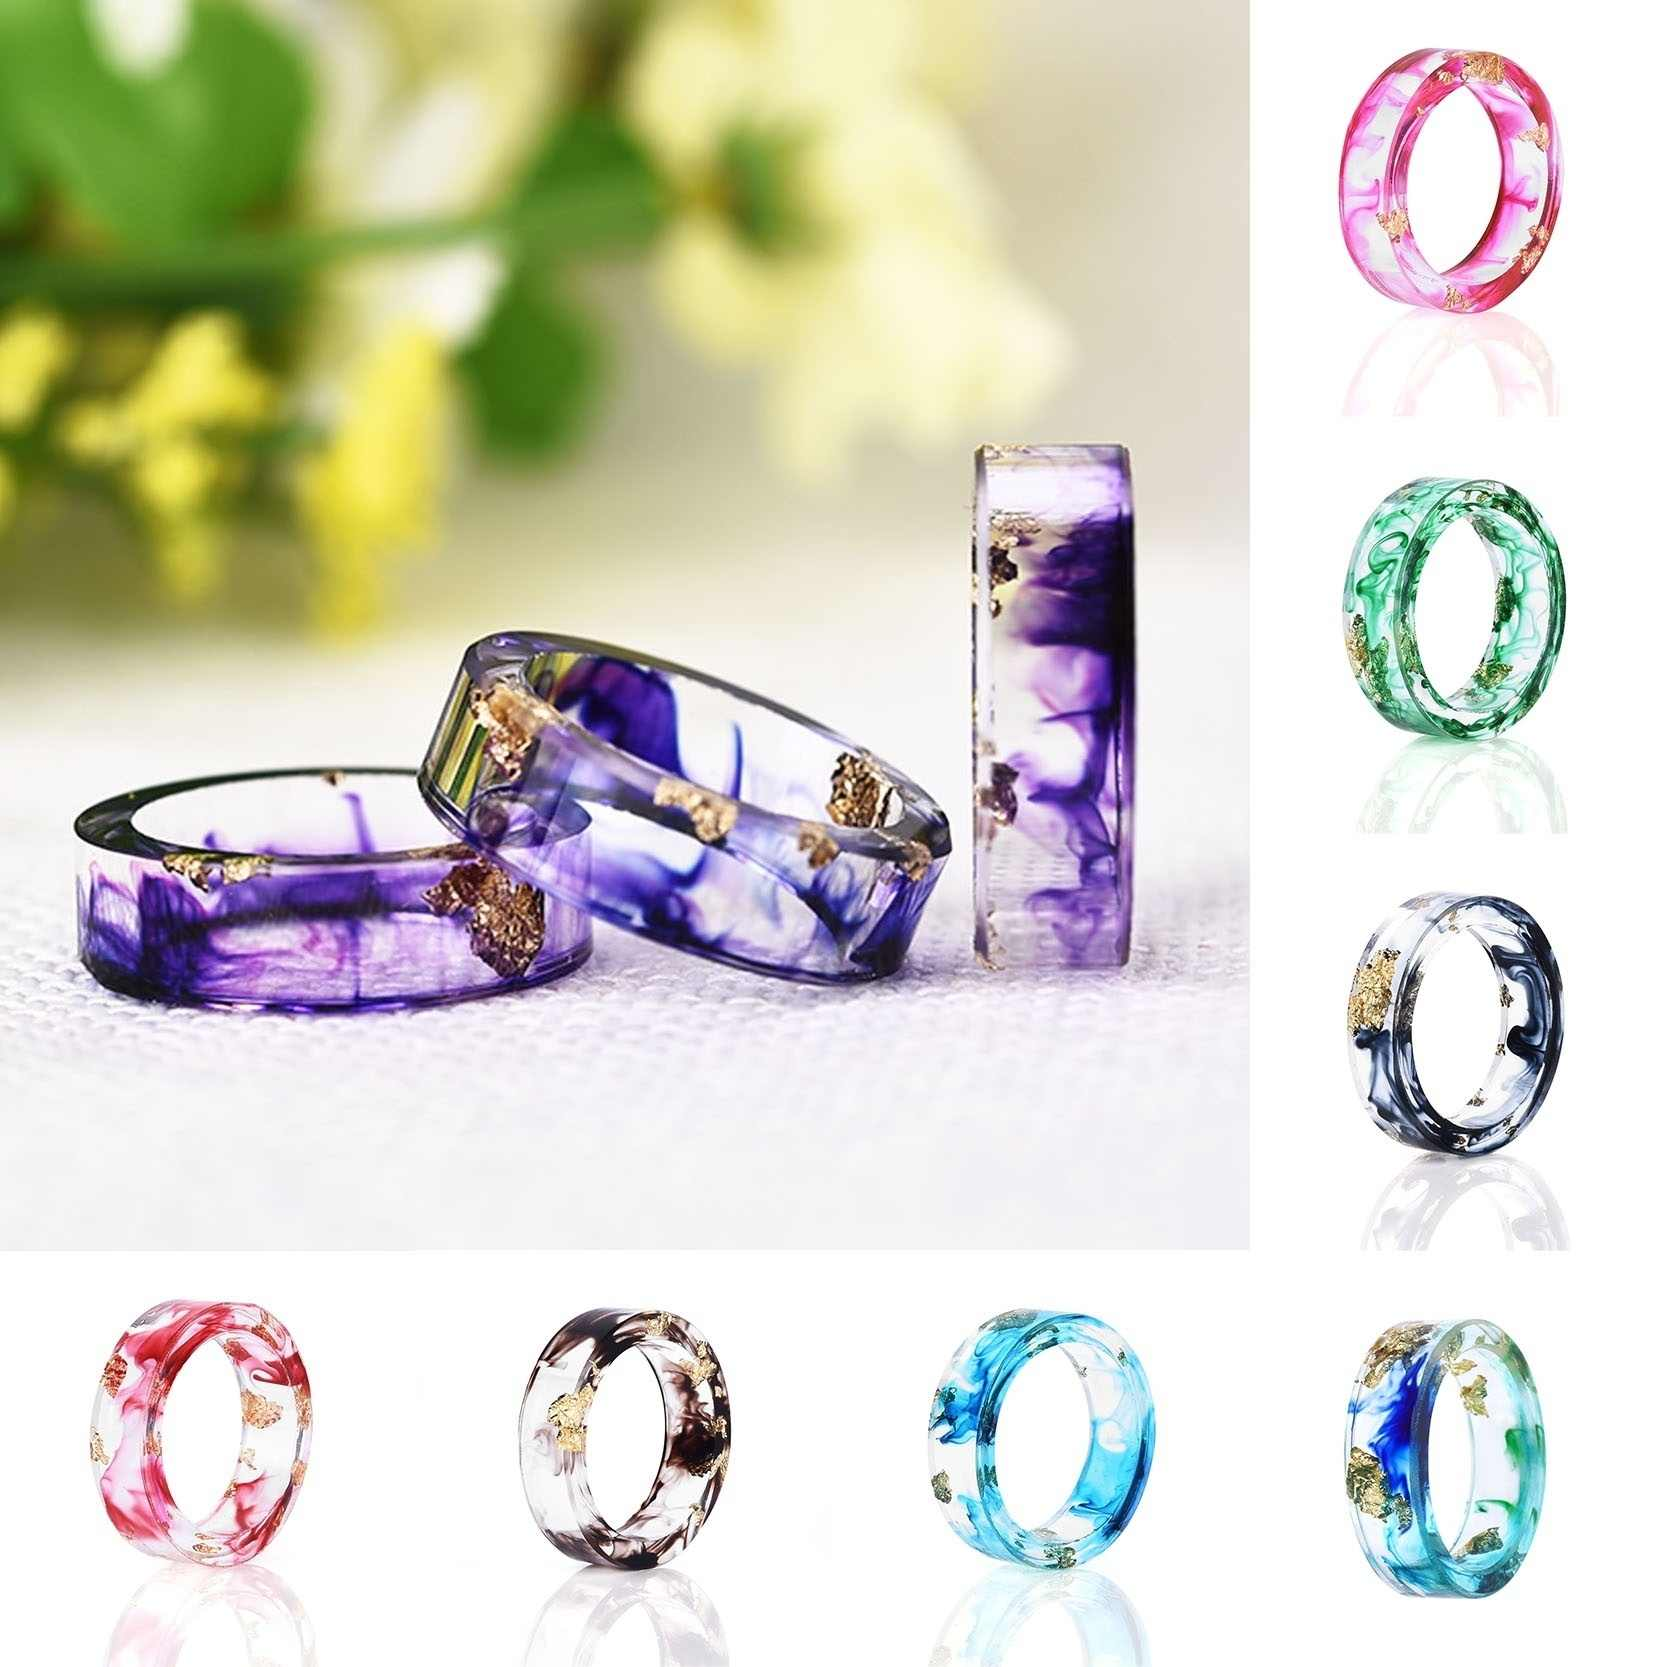 Dropship 9 Colors Gold Foil Paper Inside Resin Ring for Women Fresh Handmade Dry Flower Ring Best Mold Dried Flowers DIY Ring